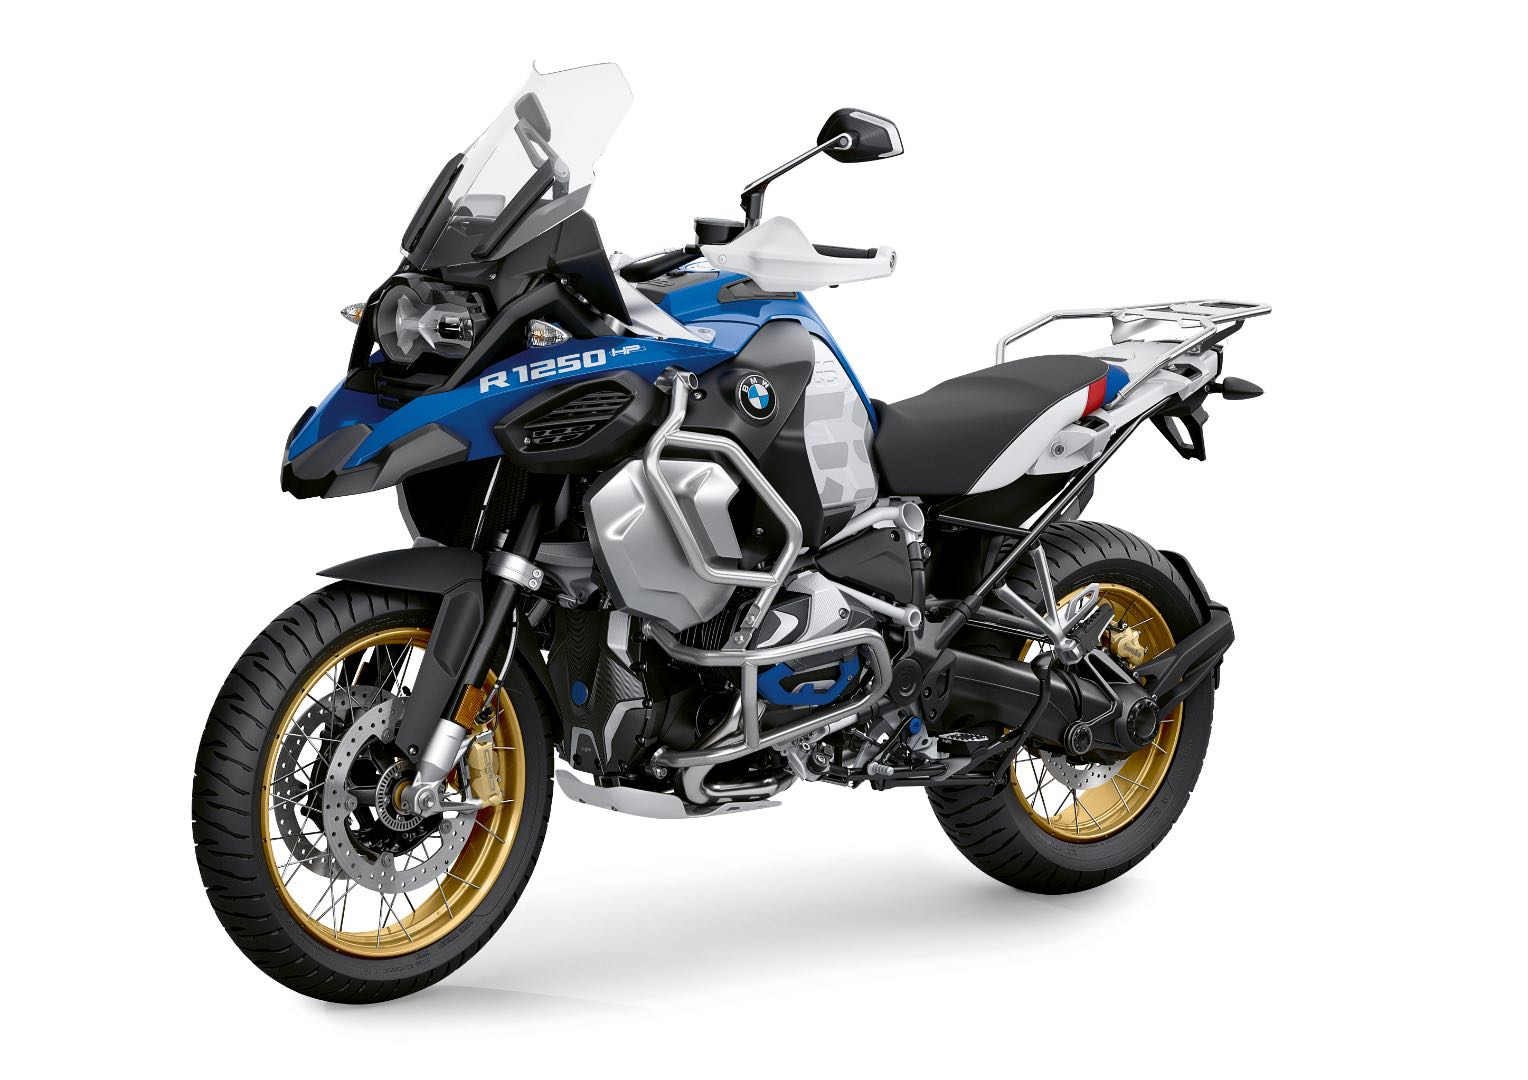 2019 bmw r 1250 gs adventure first look 26 photos